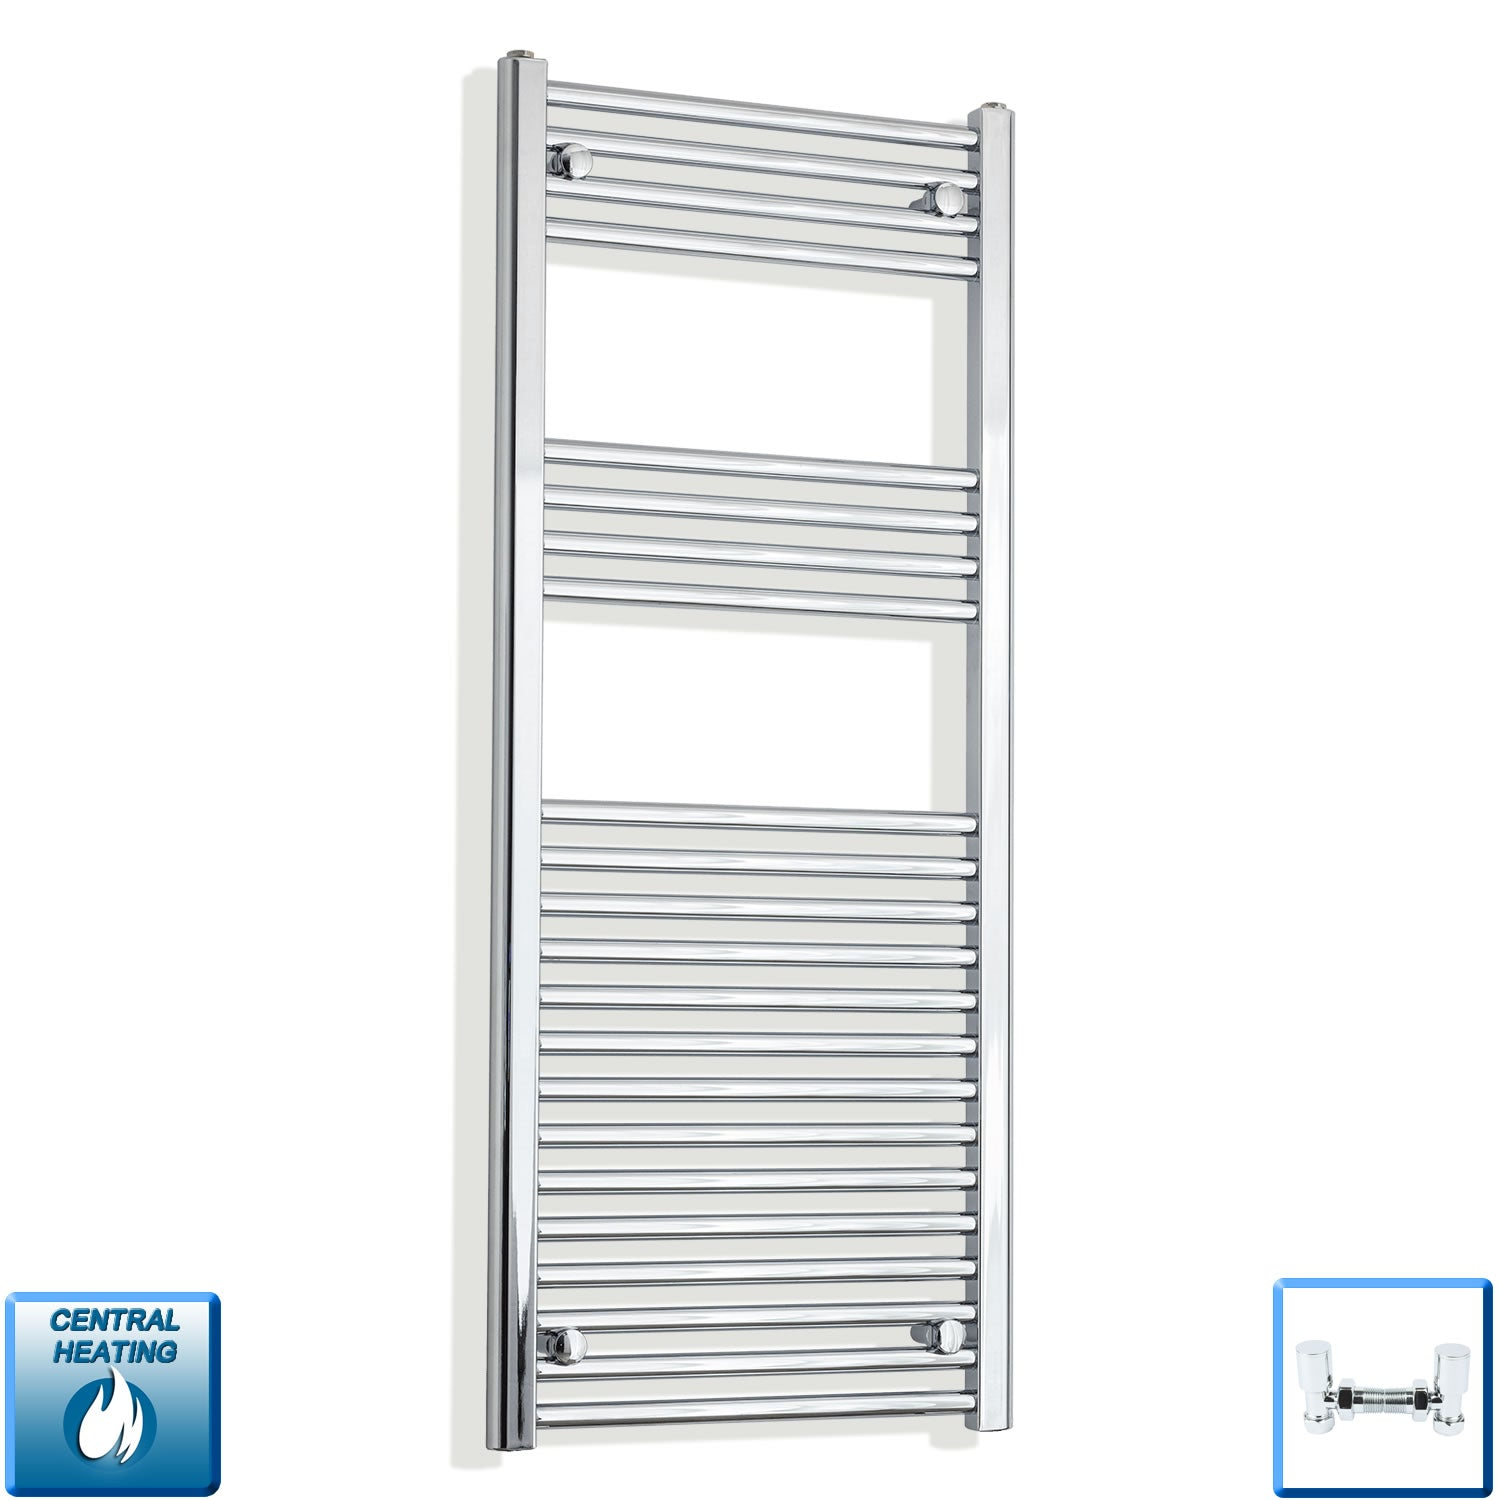 500mm Wide 1200mm High Straight Chrome Heated Towel Rail Radiator HTR,With Angled Valve